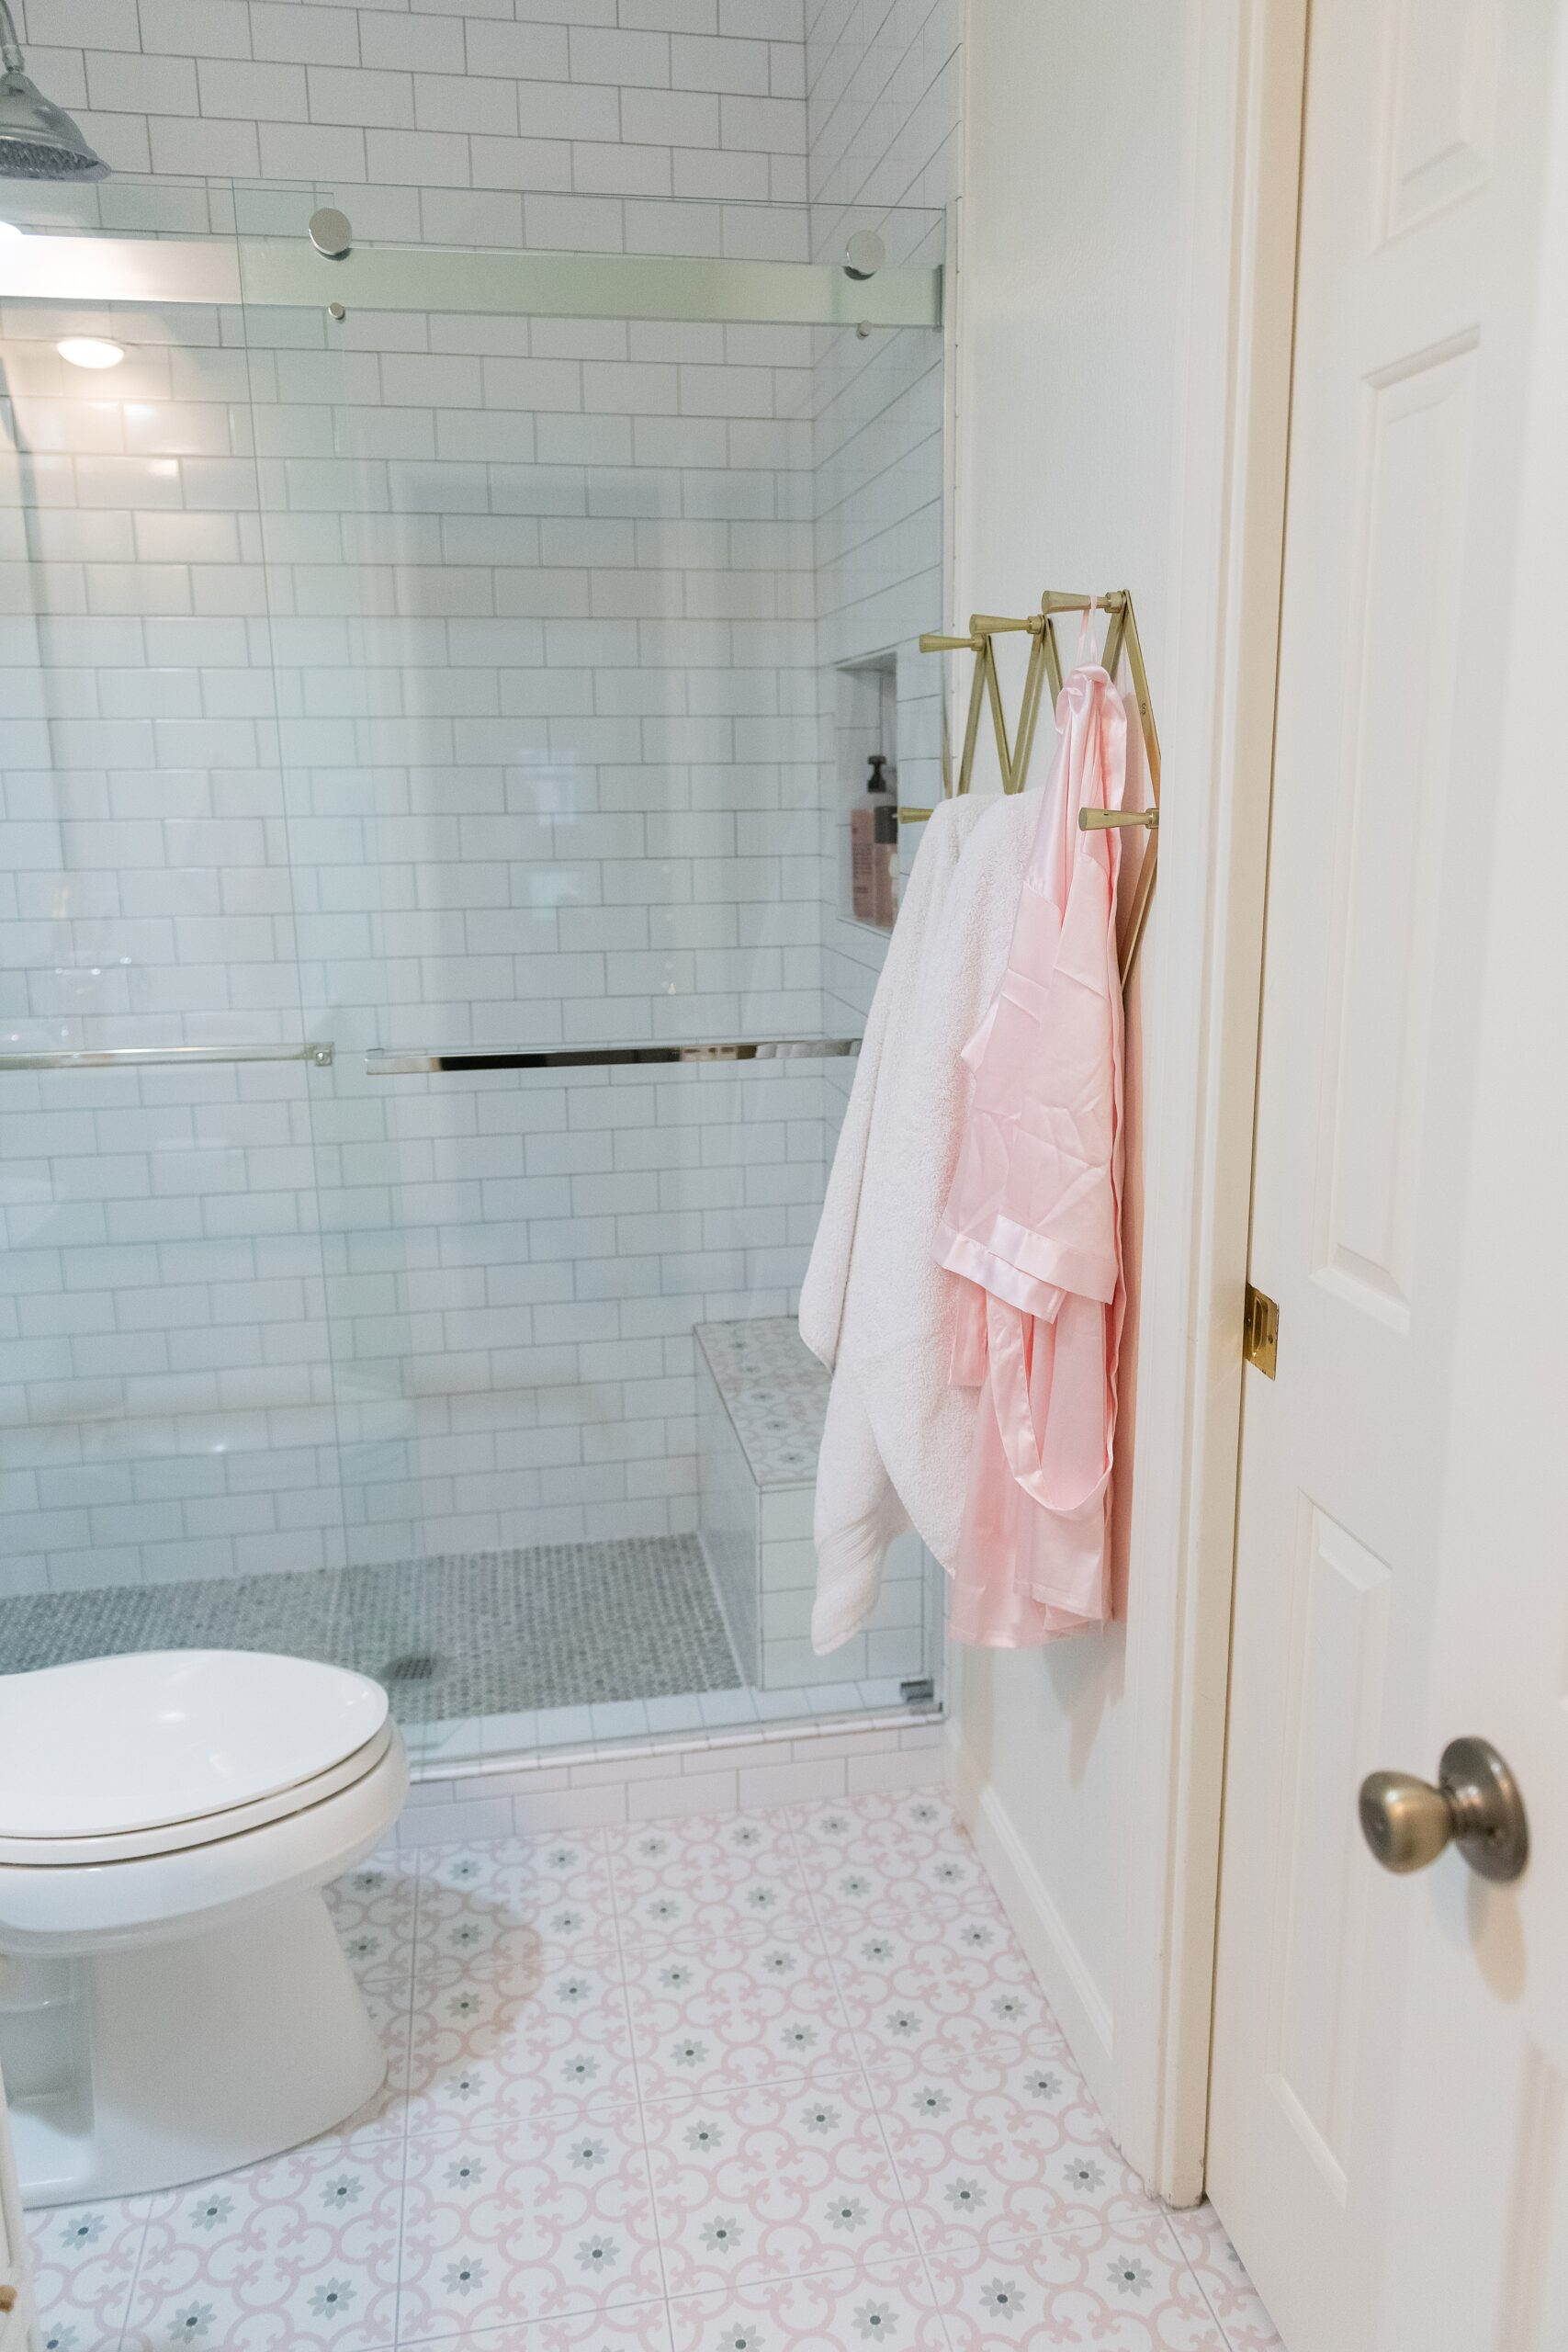 Girls Bathroom by popular Houston life and style blog, Fancy Ashley: image of a bathroom with a walk in shower that has white subway tile, pink and grey tiles, and grey penny tiles, pink and grey tile flooring a gold accordion wall hook with pink and white towels hanging from them.